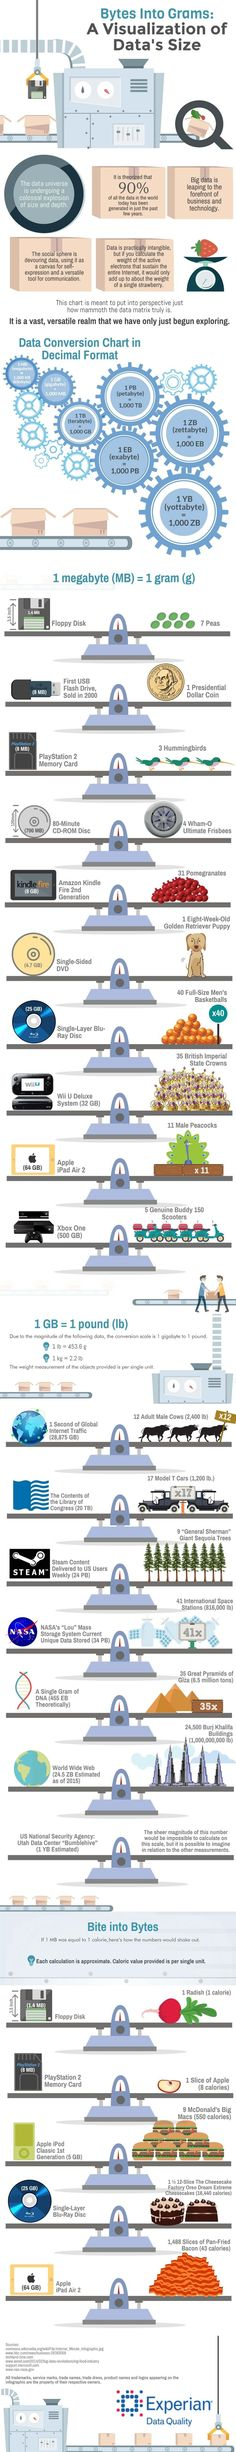 Bytes Into Grams: A Visualization of Data's Size #infographic #BigData #Technology